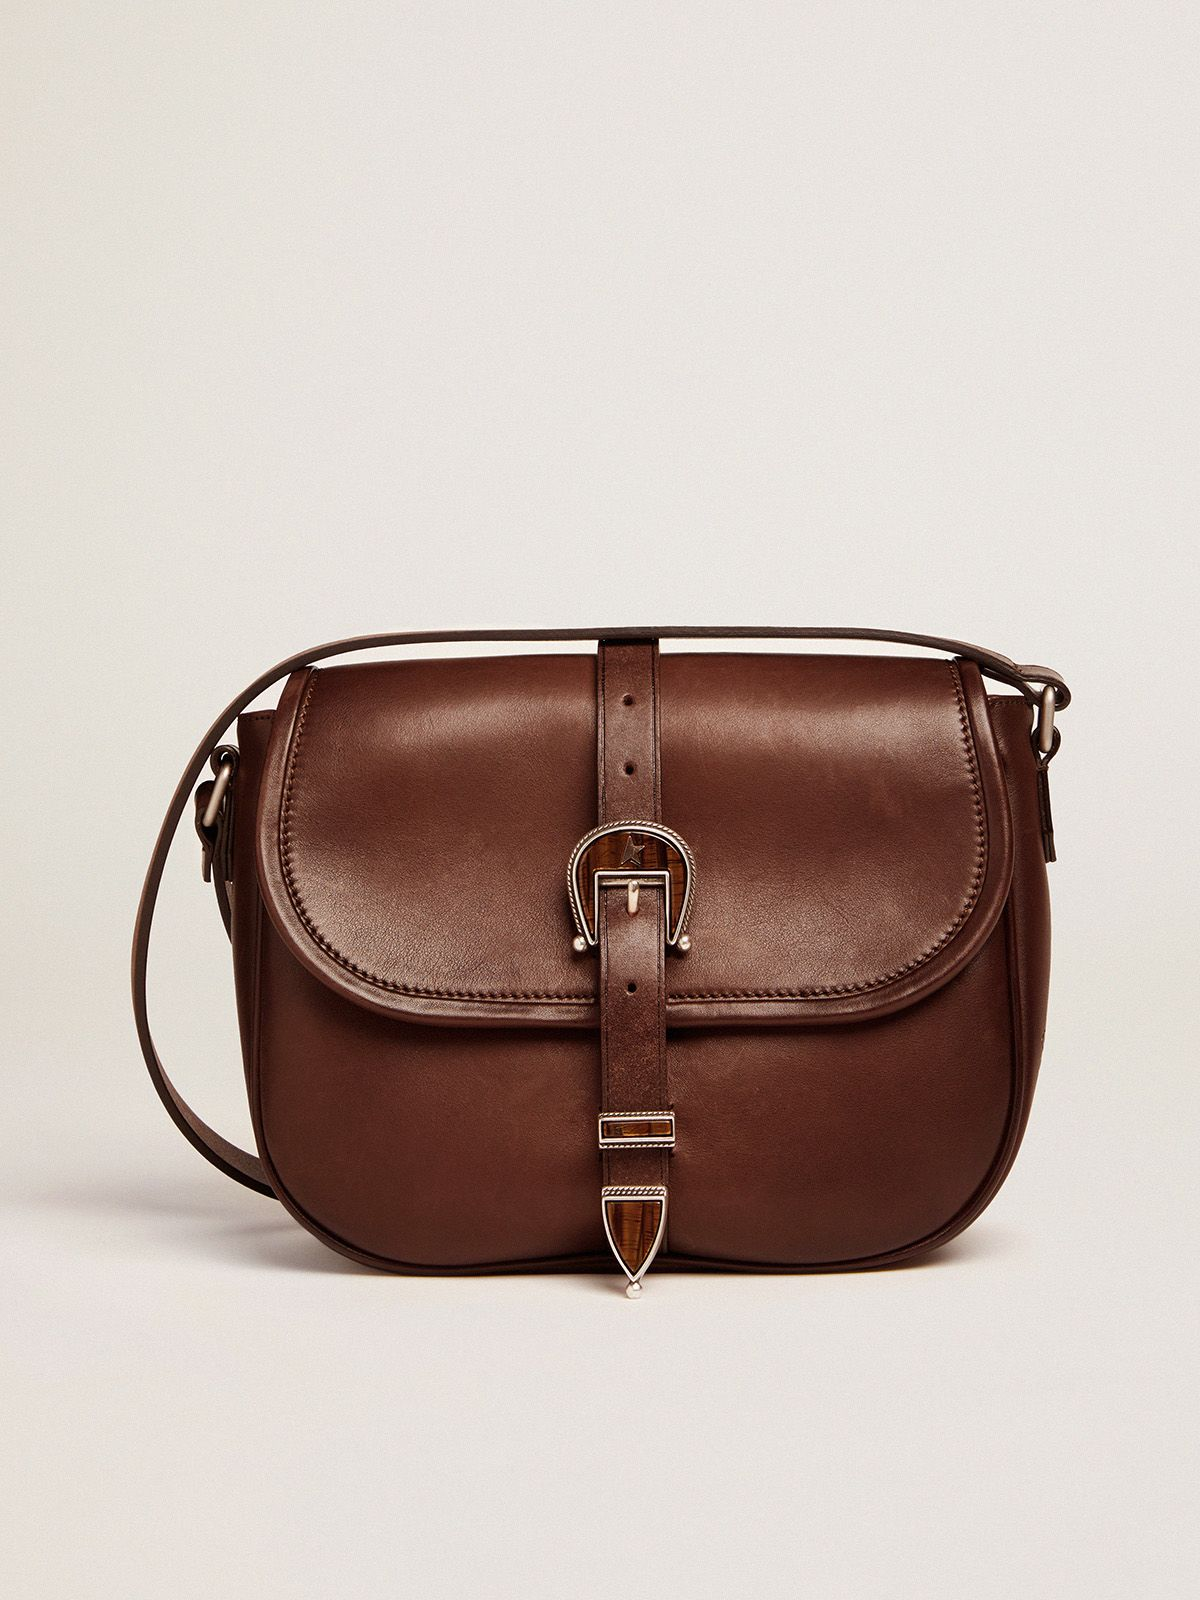 Medium Rodeo Bag in dark tan leather